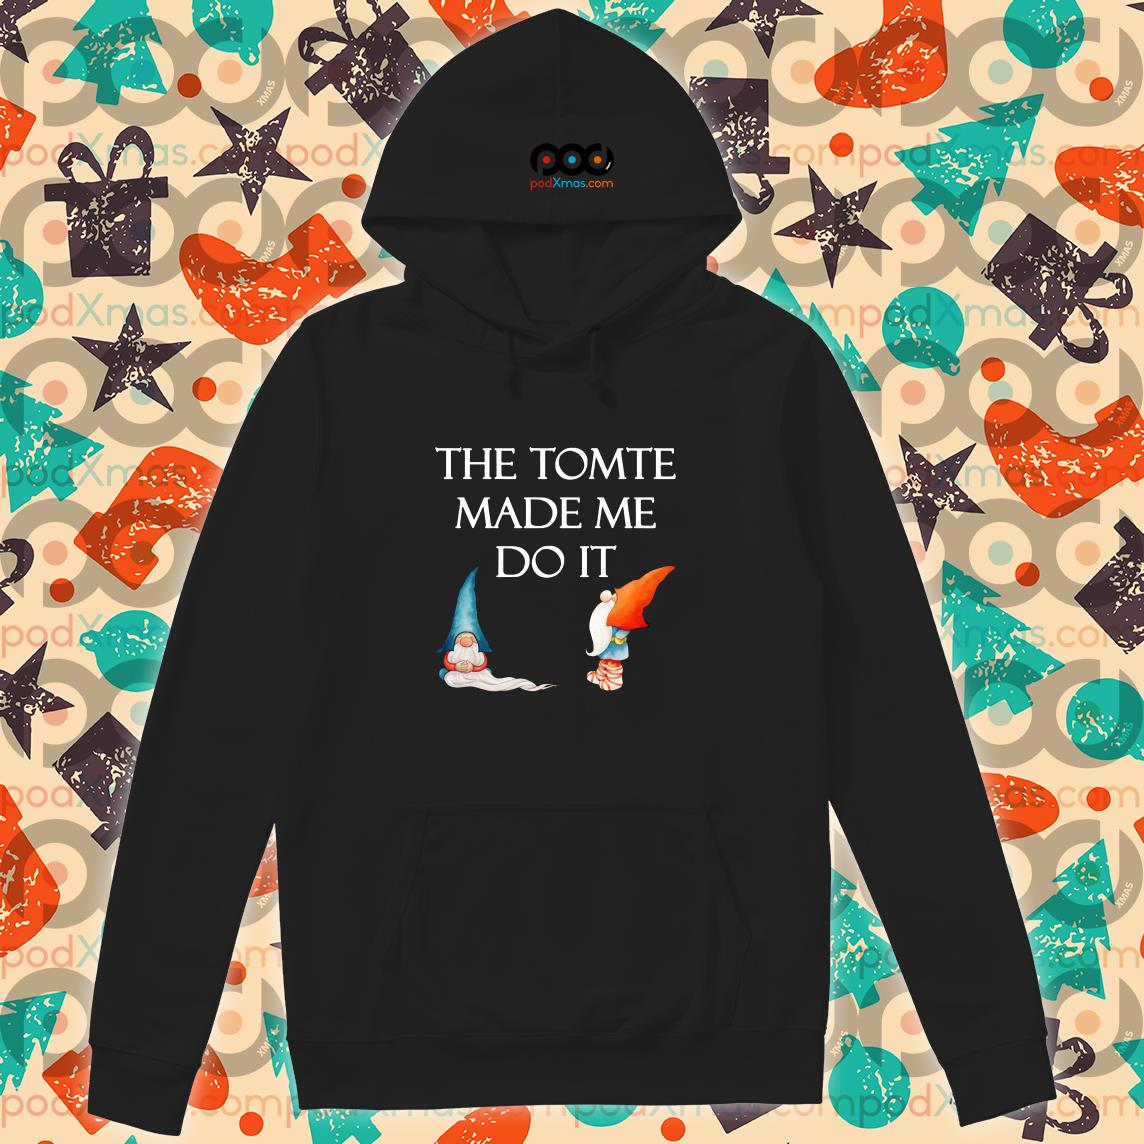 The tomte made me do it hoodie